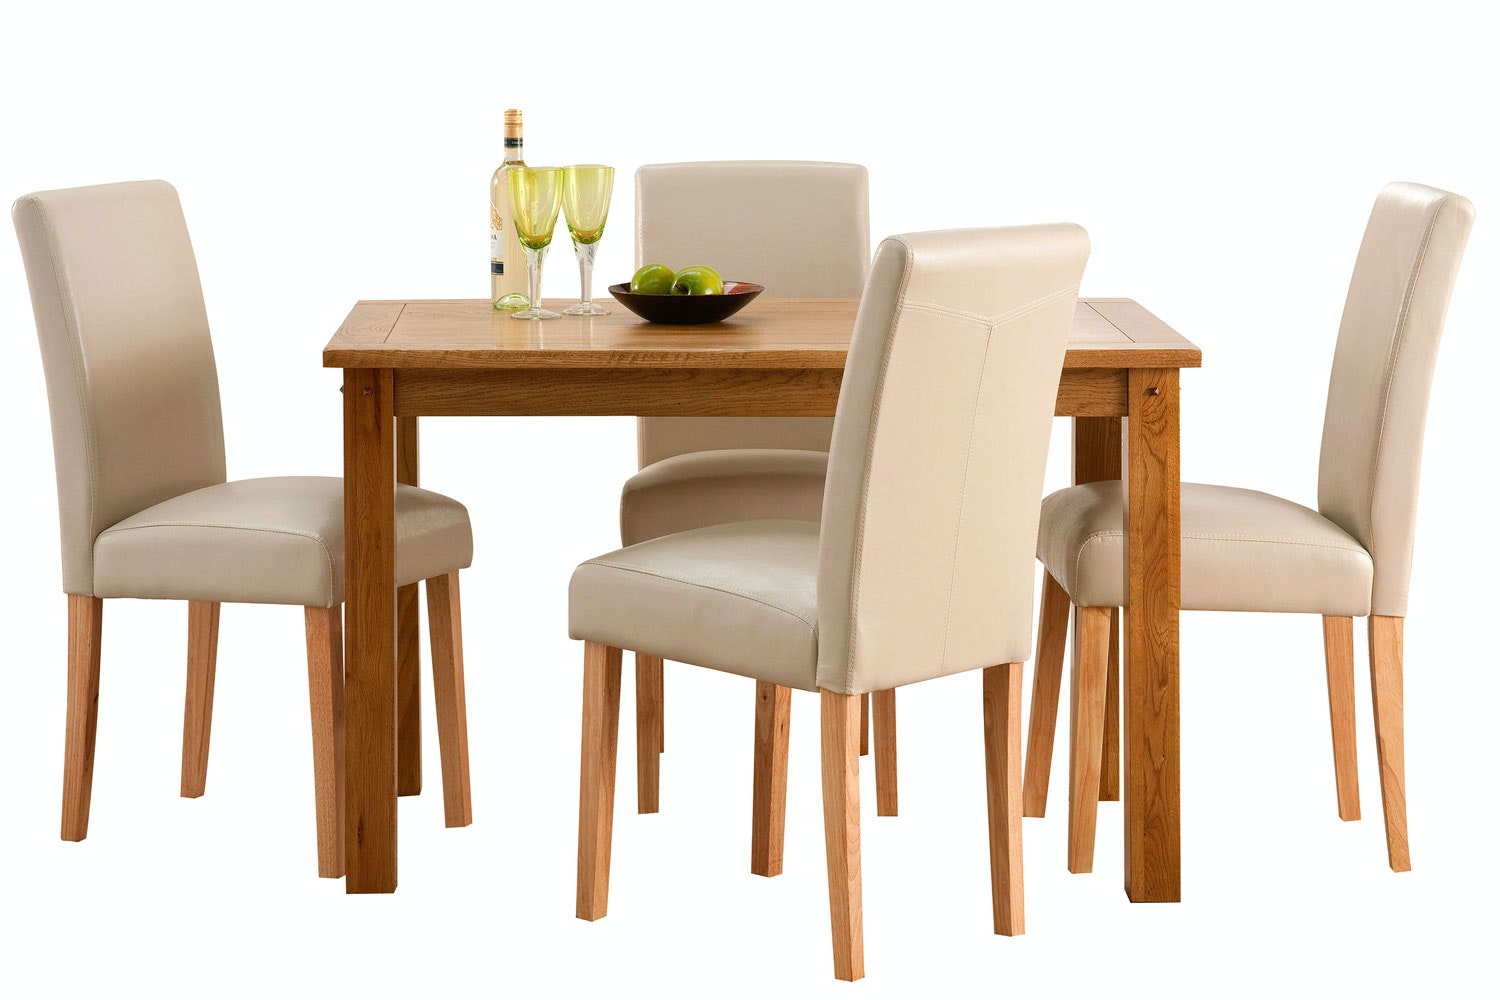 Portman 5-Piece Oak Dining Set